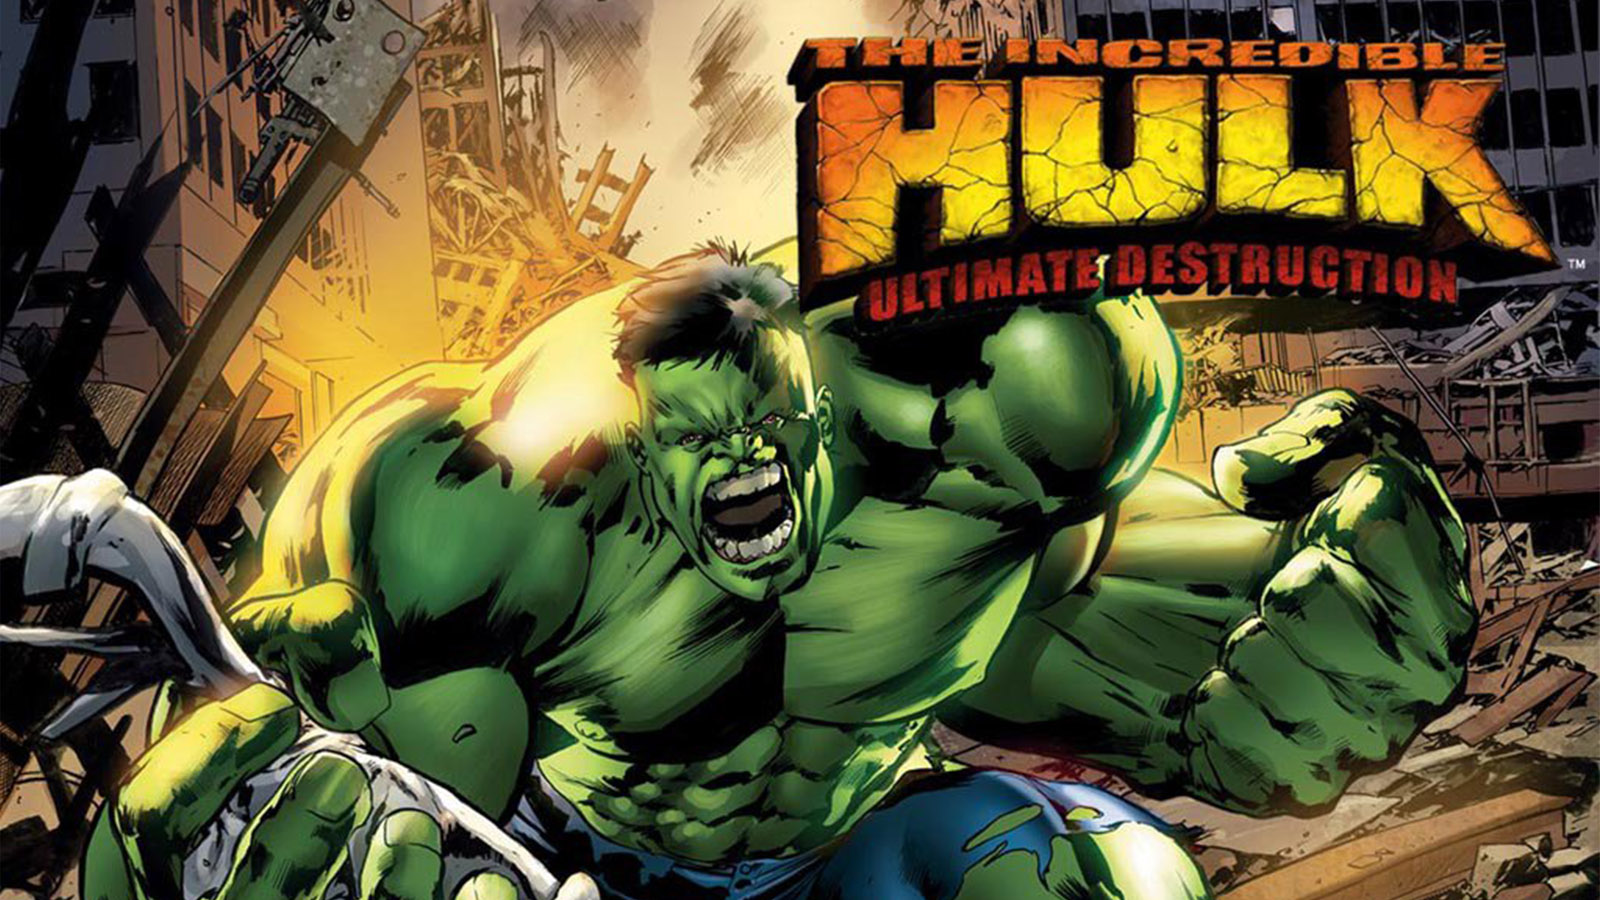 The Incredible Hulk: Ultimate Destruction was originally released for PS2, Xbox and GameCube.